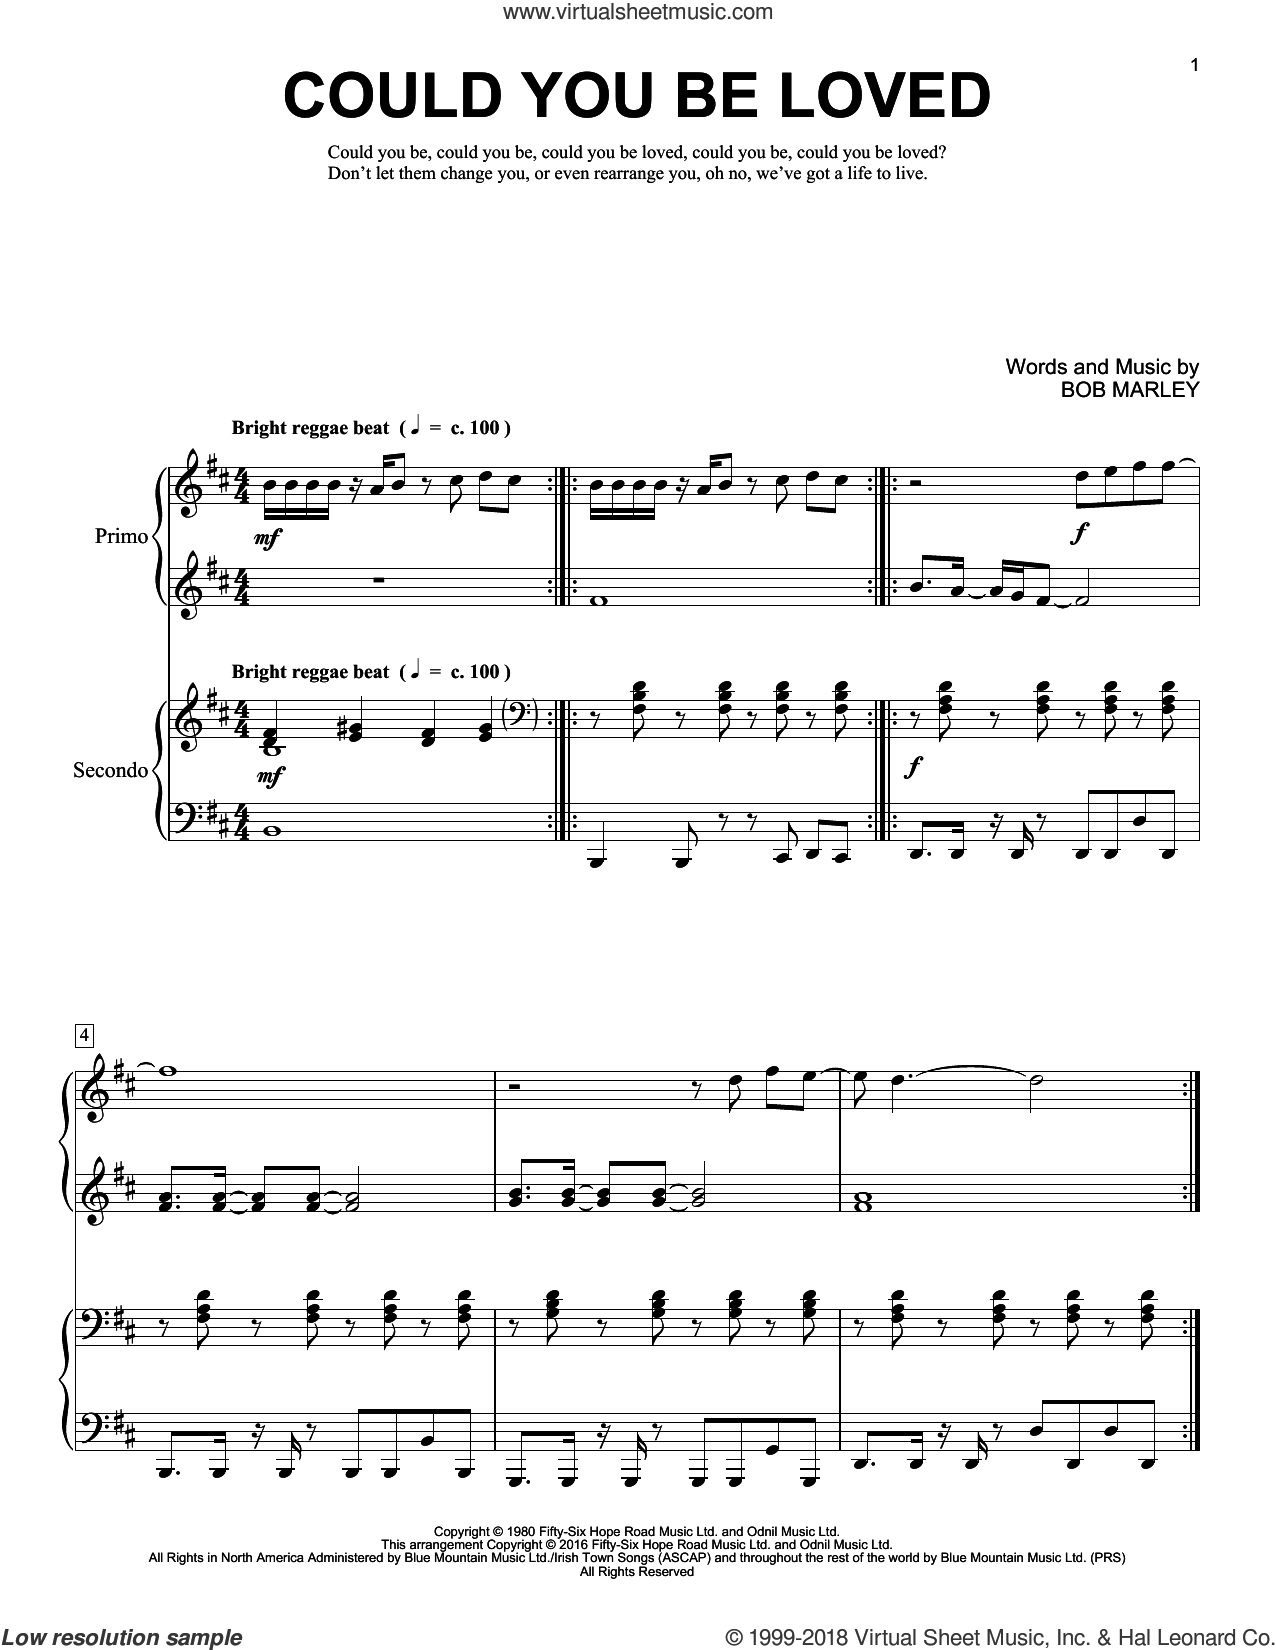 Could You Be Loved sheet music for piano four hands by Bob Marley, Brent Edstrom and Bob Marley and The Wailers, intermediate skill level